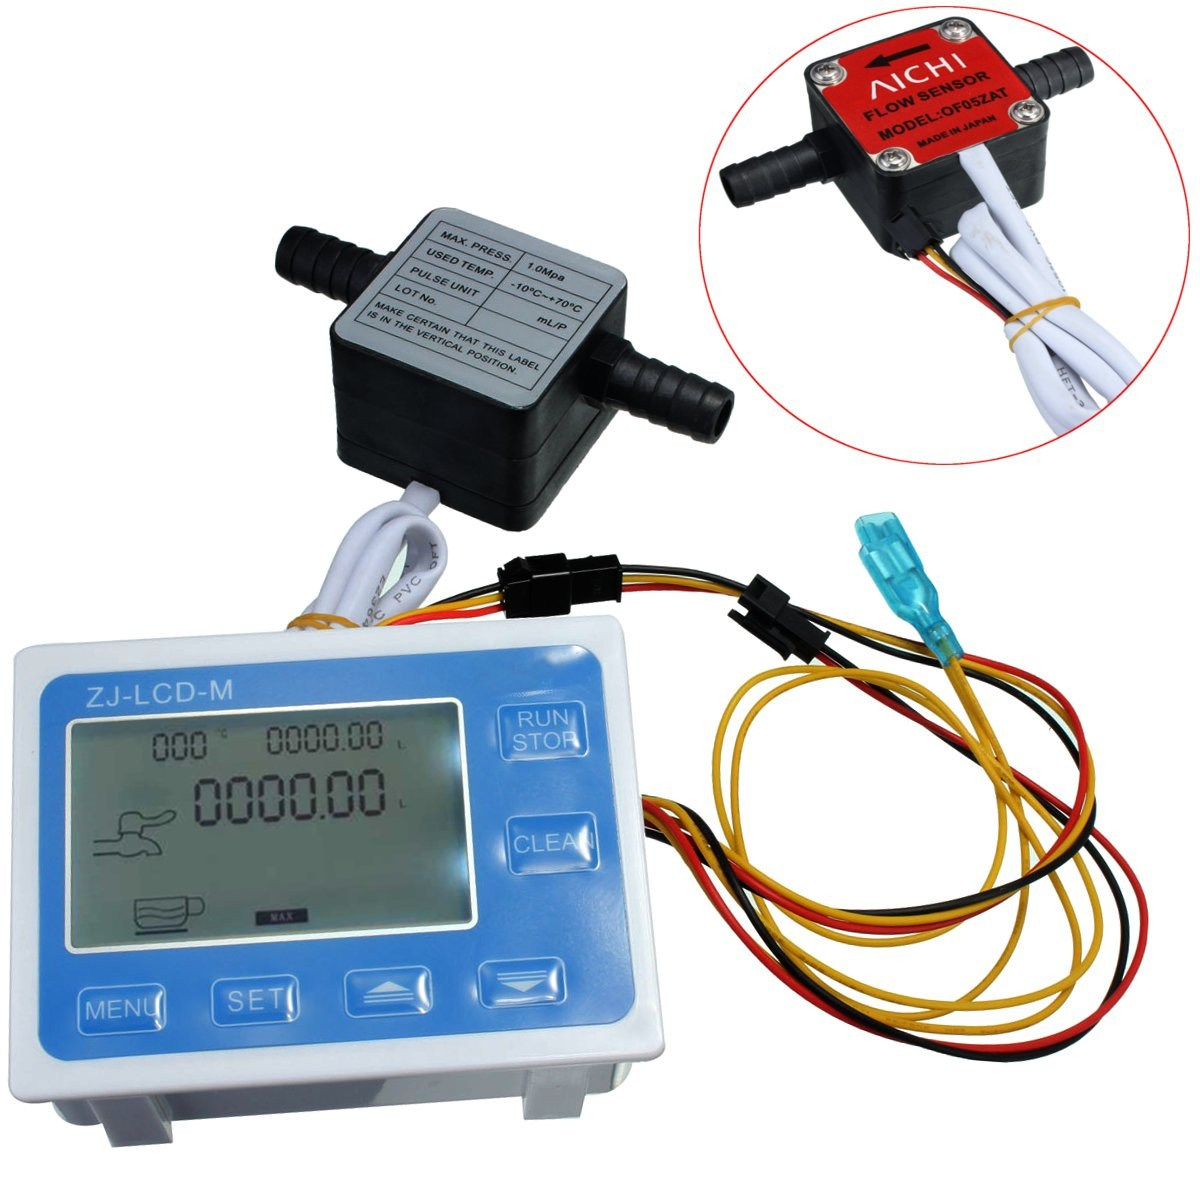 High Quality OF05ZAT Liquid Gear Flow Water Sensor Meter + LCD Digital Meter Quantitative Control Set